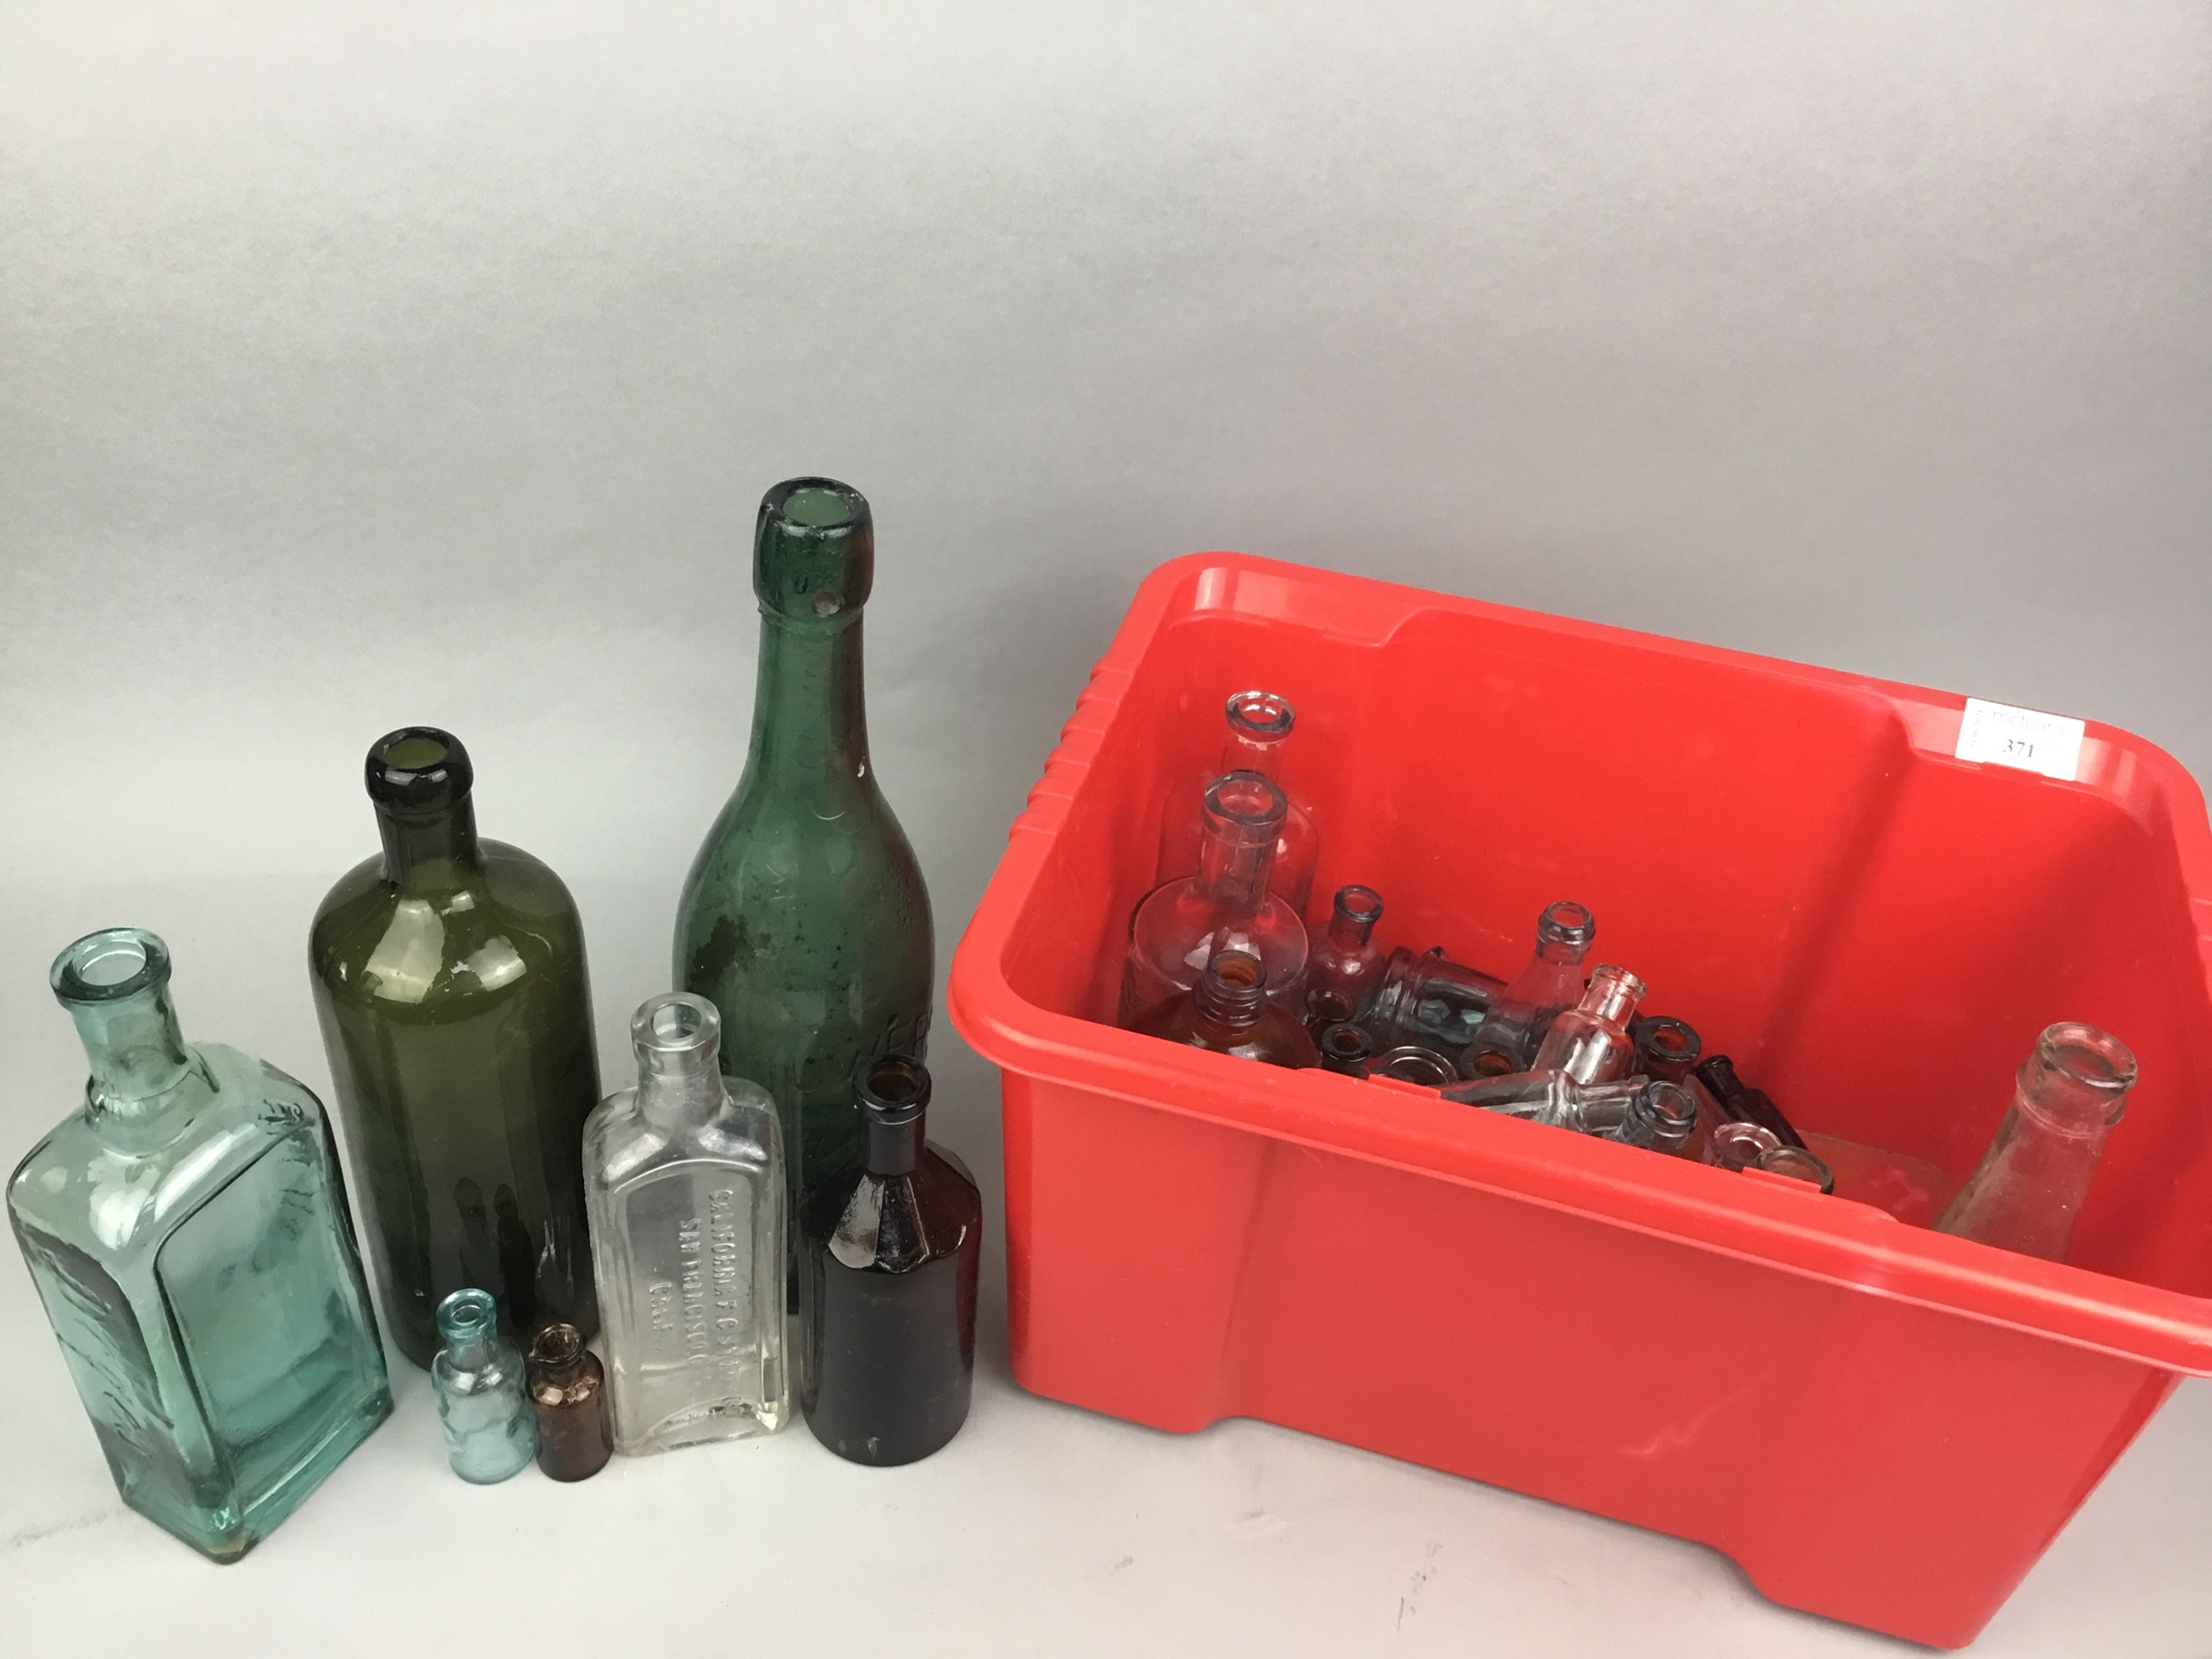 A COLLECTION OF EARLY 20TH CENTURY BEER AND MEDICINE GLASS BOTTLES